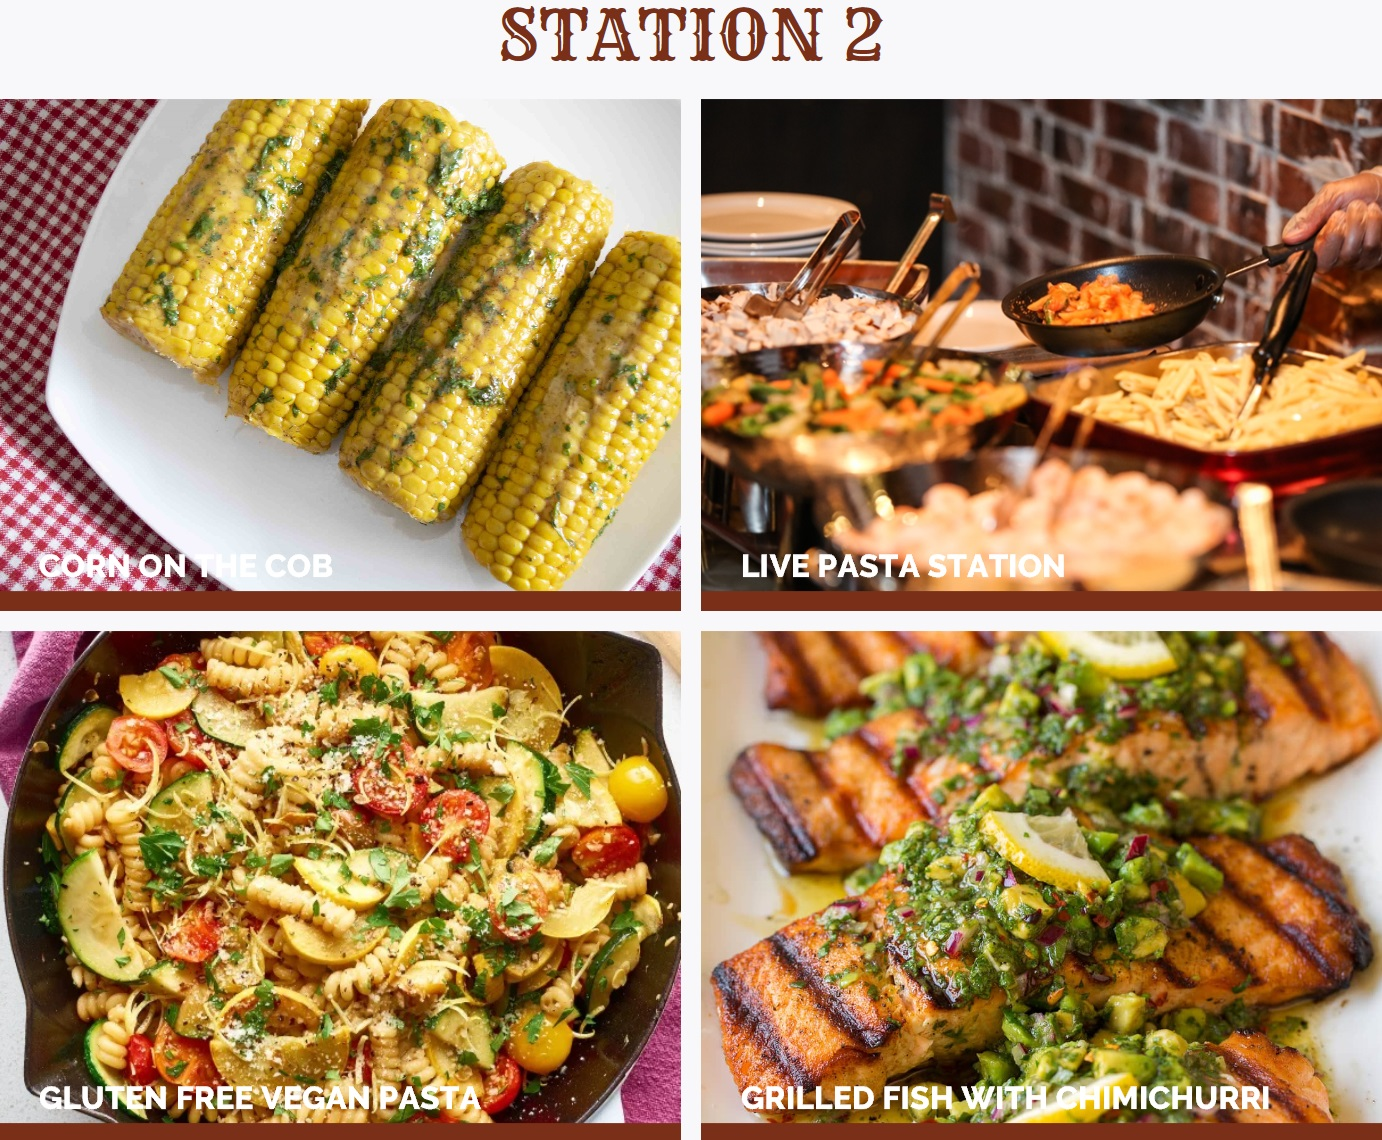 Corn on the cob with butter and Cajun seasoning, Live Pasta Station - Chicken or Shrimp Cajun Pasta, Gluten Free Vegan Pasta, Grilled fish with Chimichurri